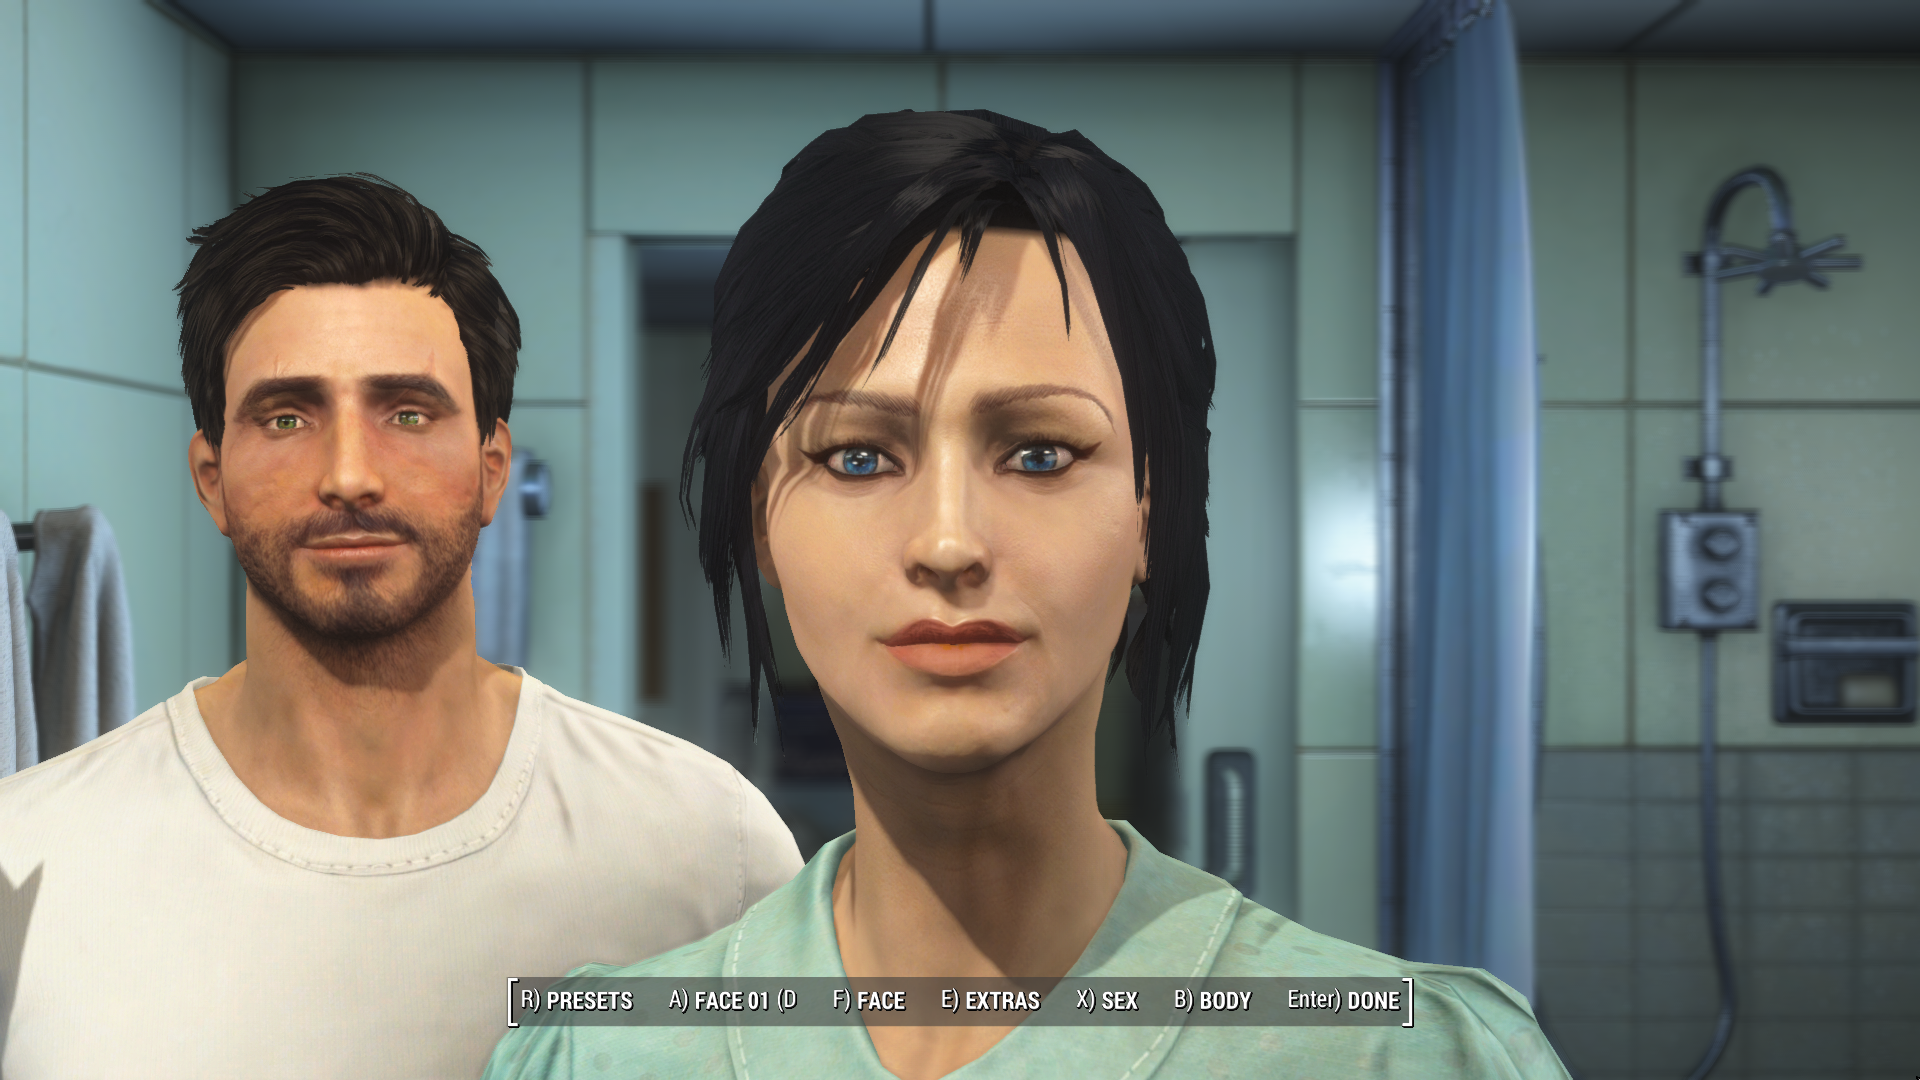 My character presets for the Female and Male Protagonists